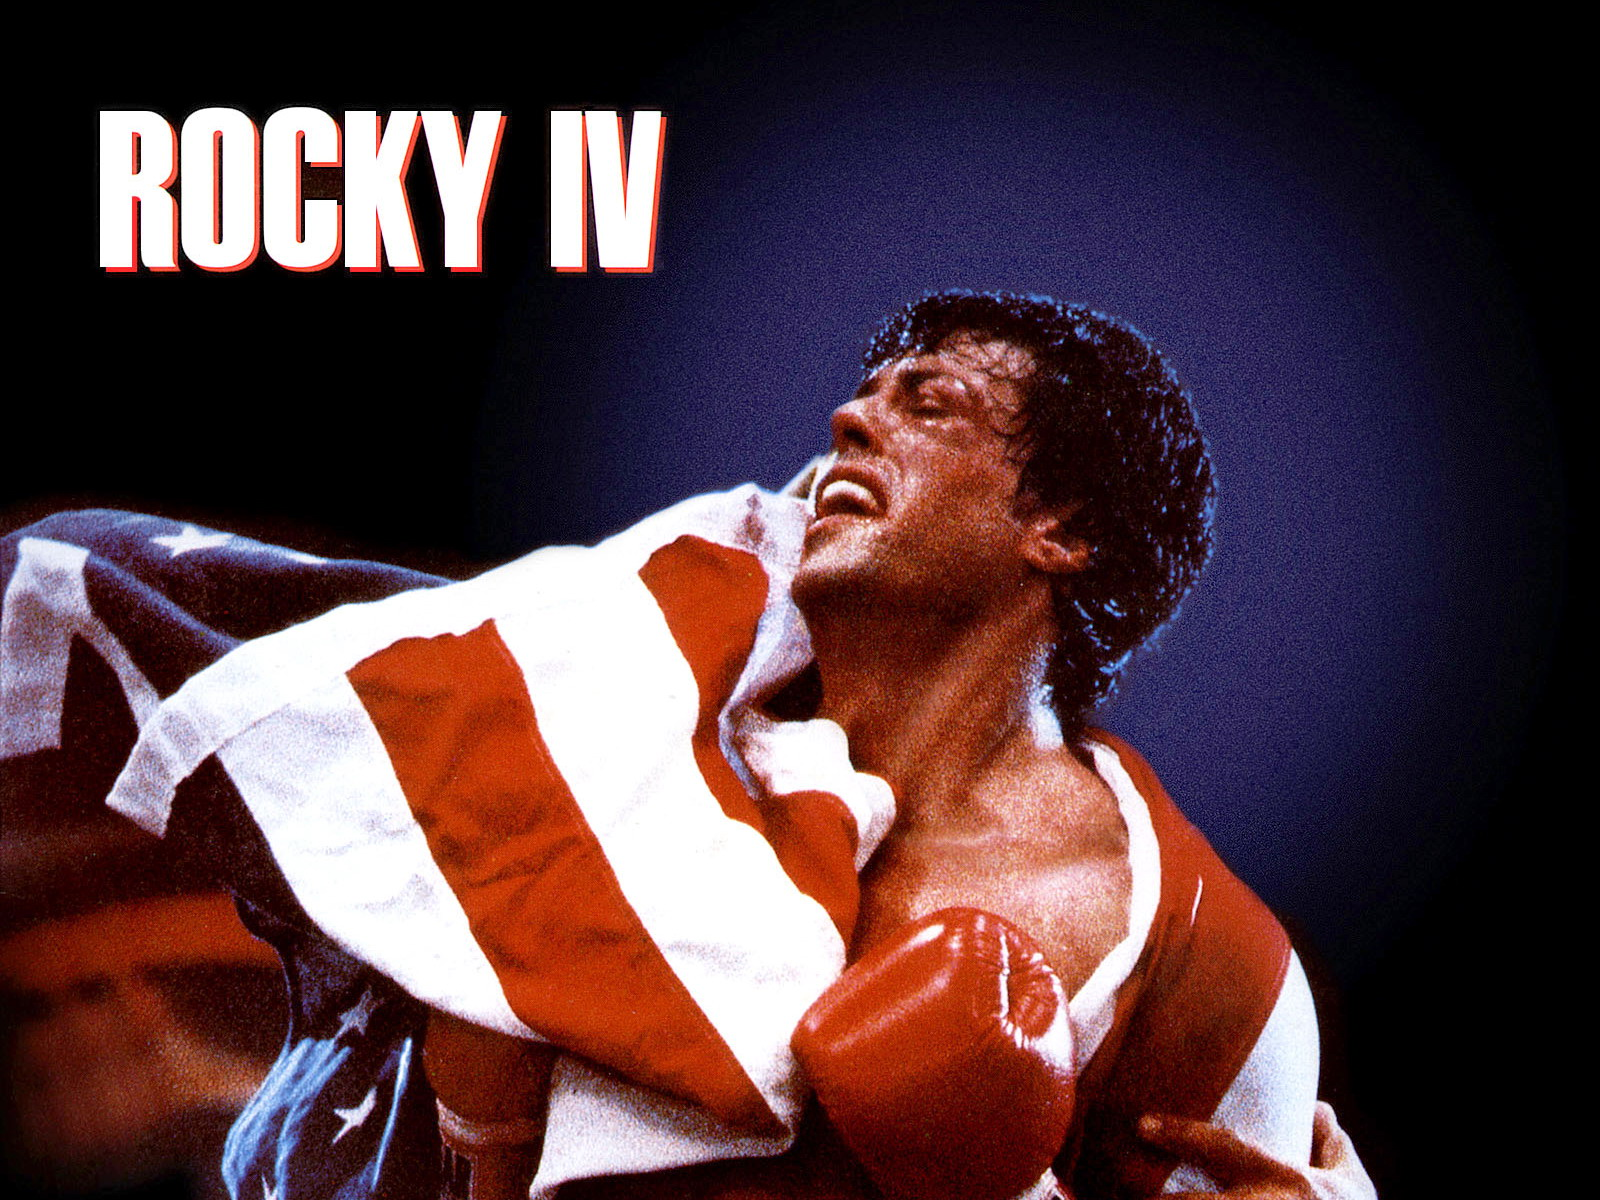 https://asitoughttobe.files.wordpress.com/2013/08/rocky-iv-1985-624658-1.jpg